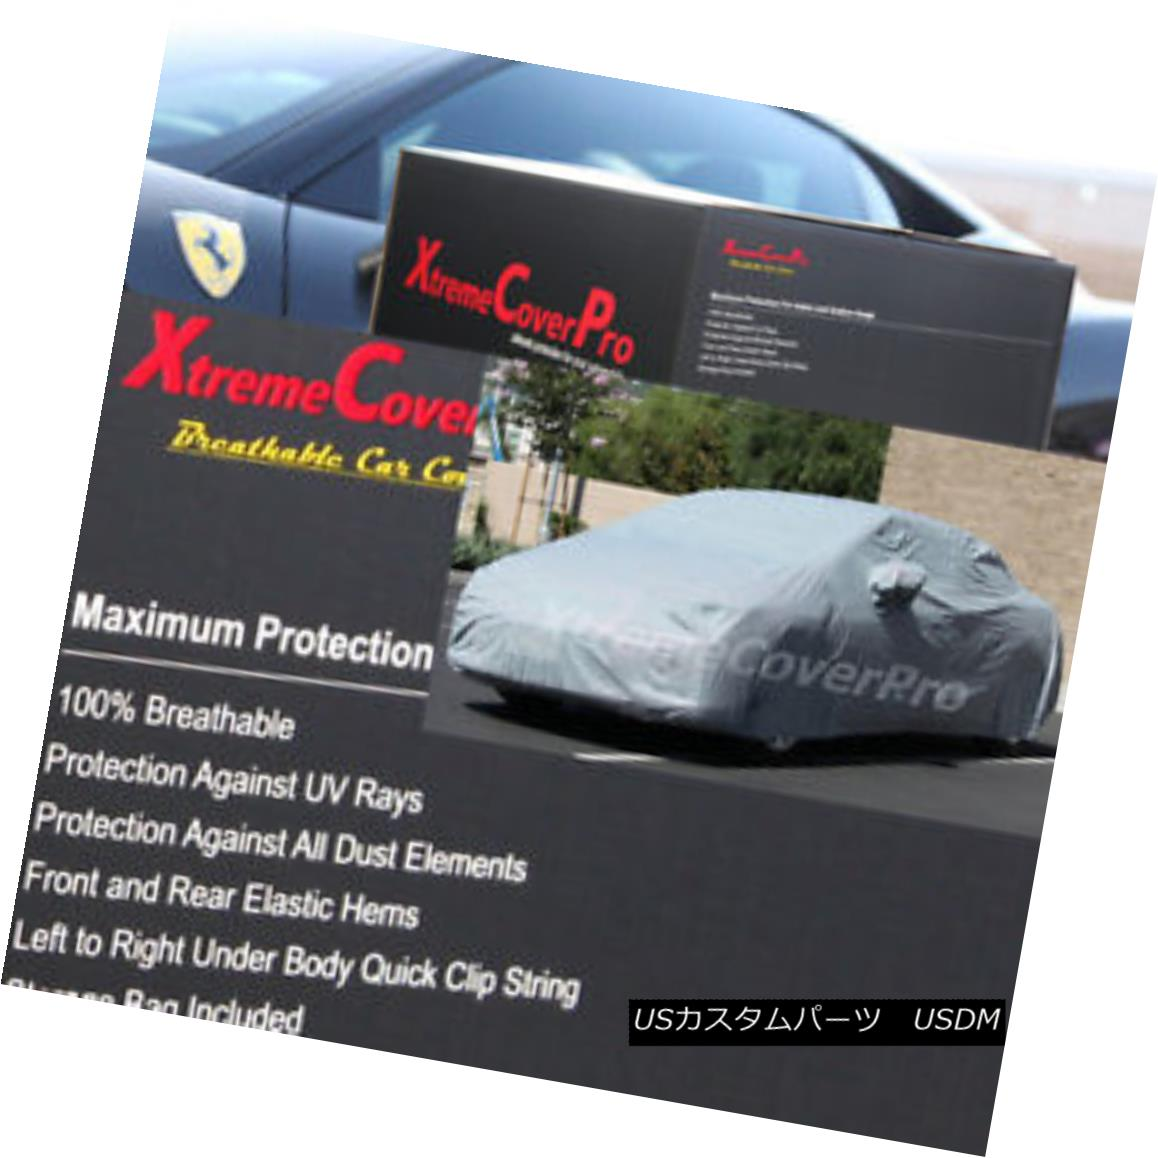 カーカバー 1992 1993 1994 1995 1996 Jaguar XJS Breathable Car Cover w/MirrorPocket 1992 1993 1994 1995 1996ジャガーXJS通気性の車カバー付きMirrorPocket